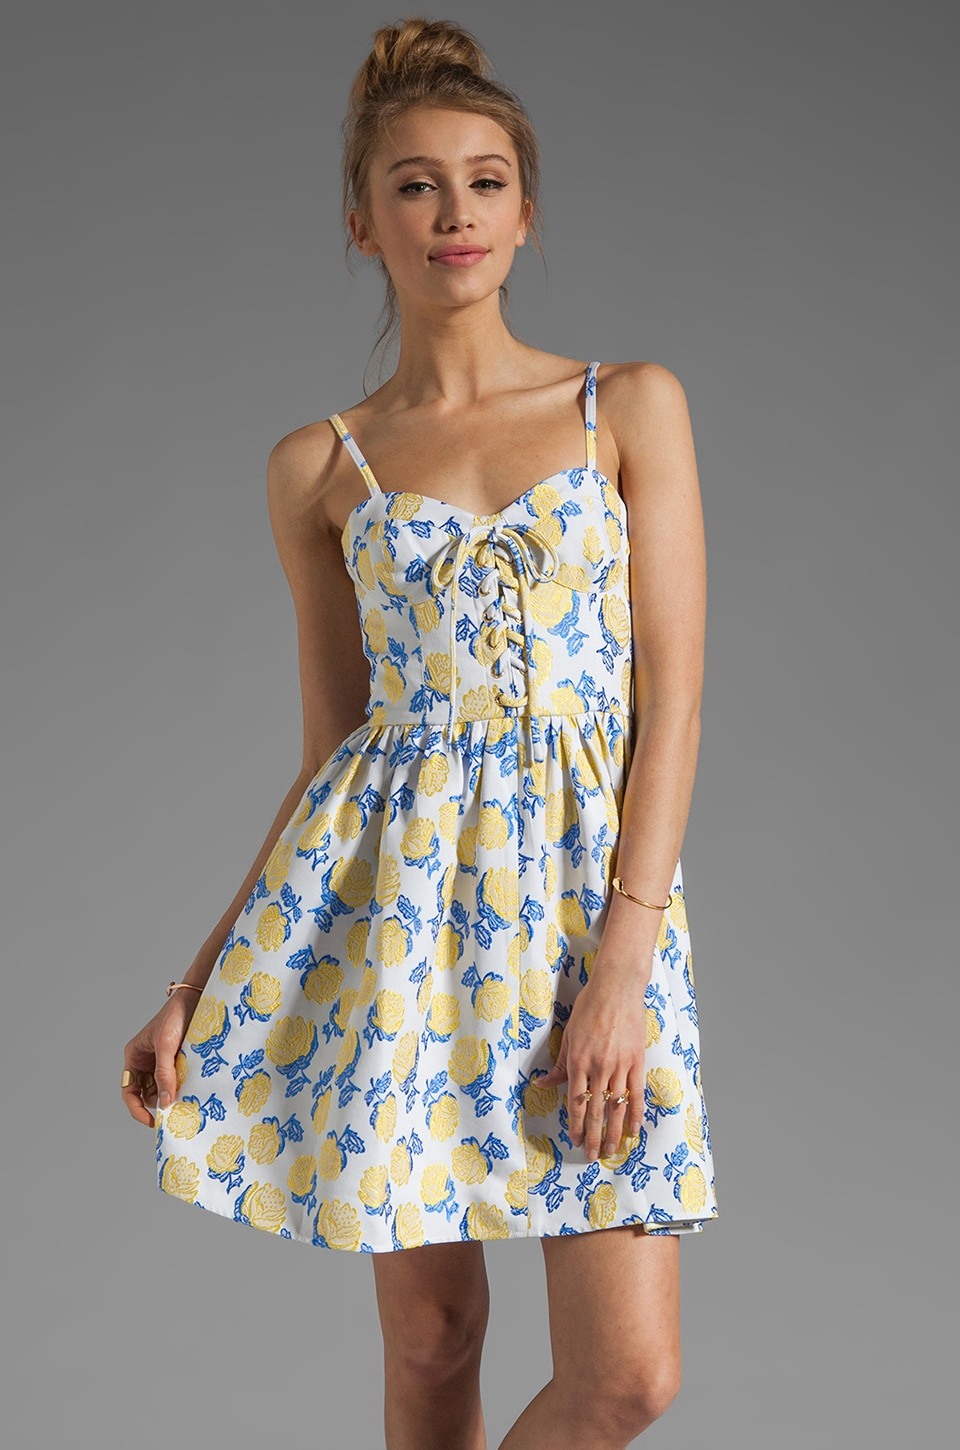 Juicy Couture Bright Rose Jacquard Bustier Dress in Yellow/Blue